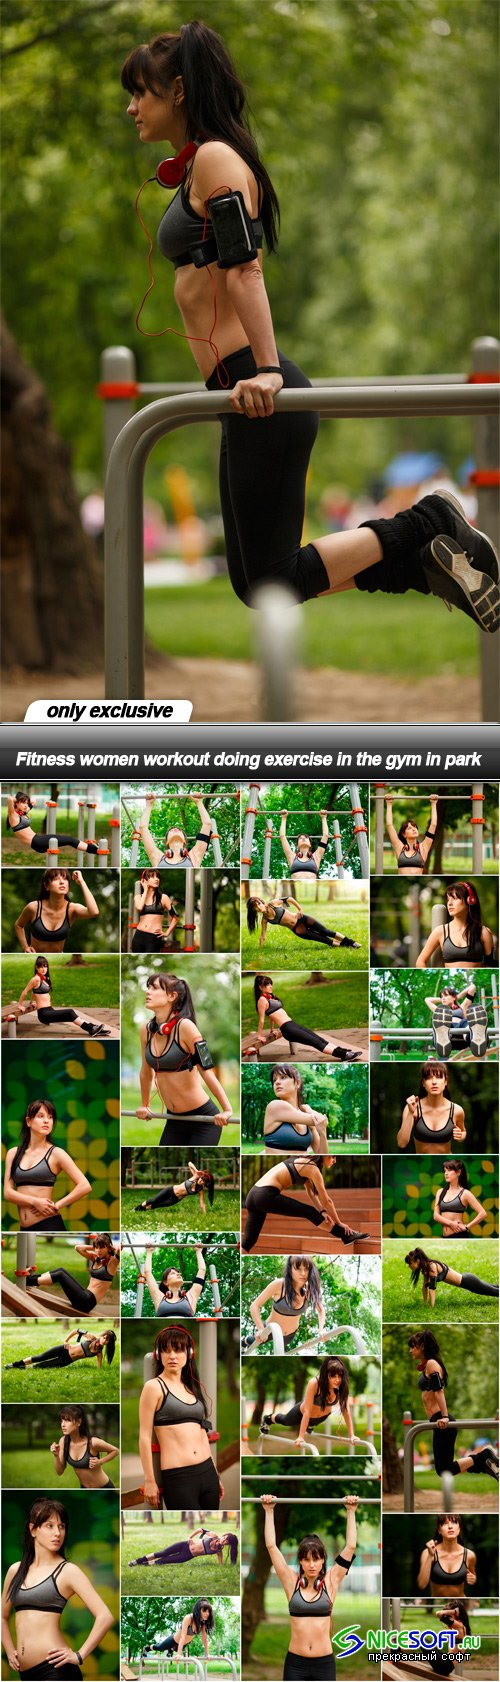 Fitness women workout doing exercise in the gym in park